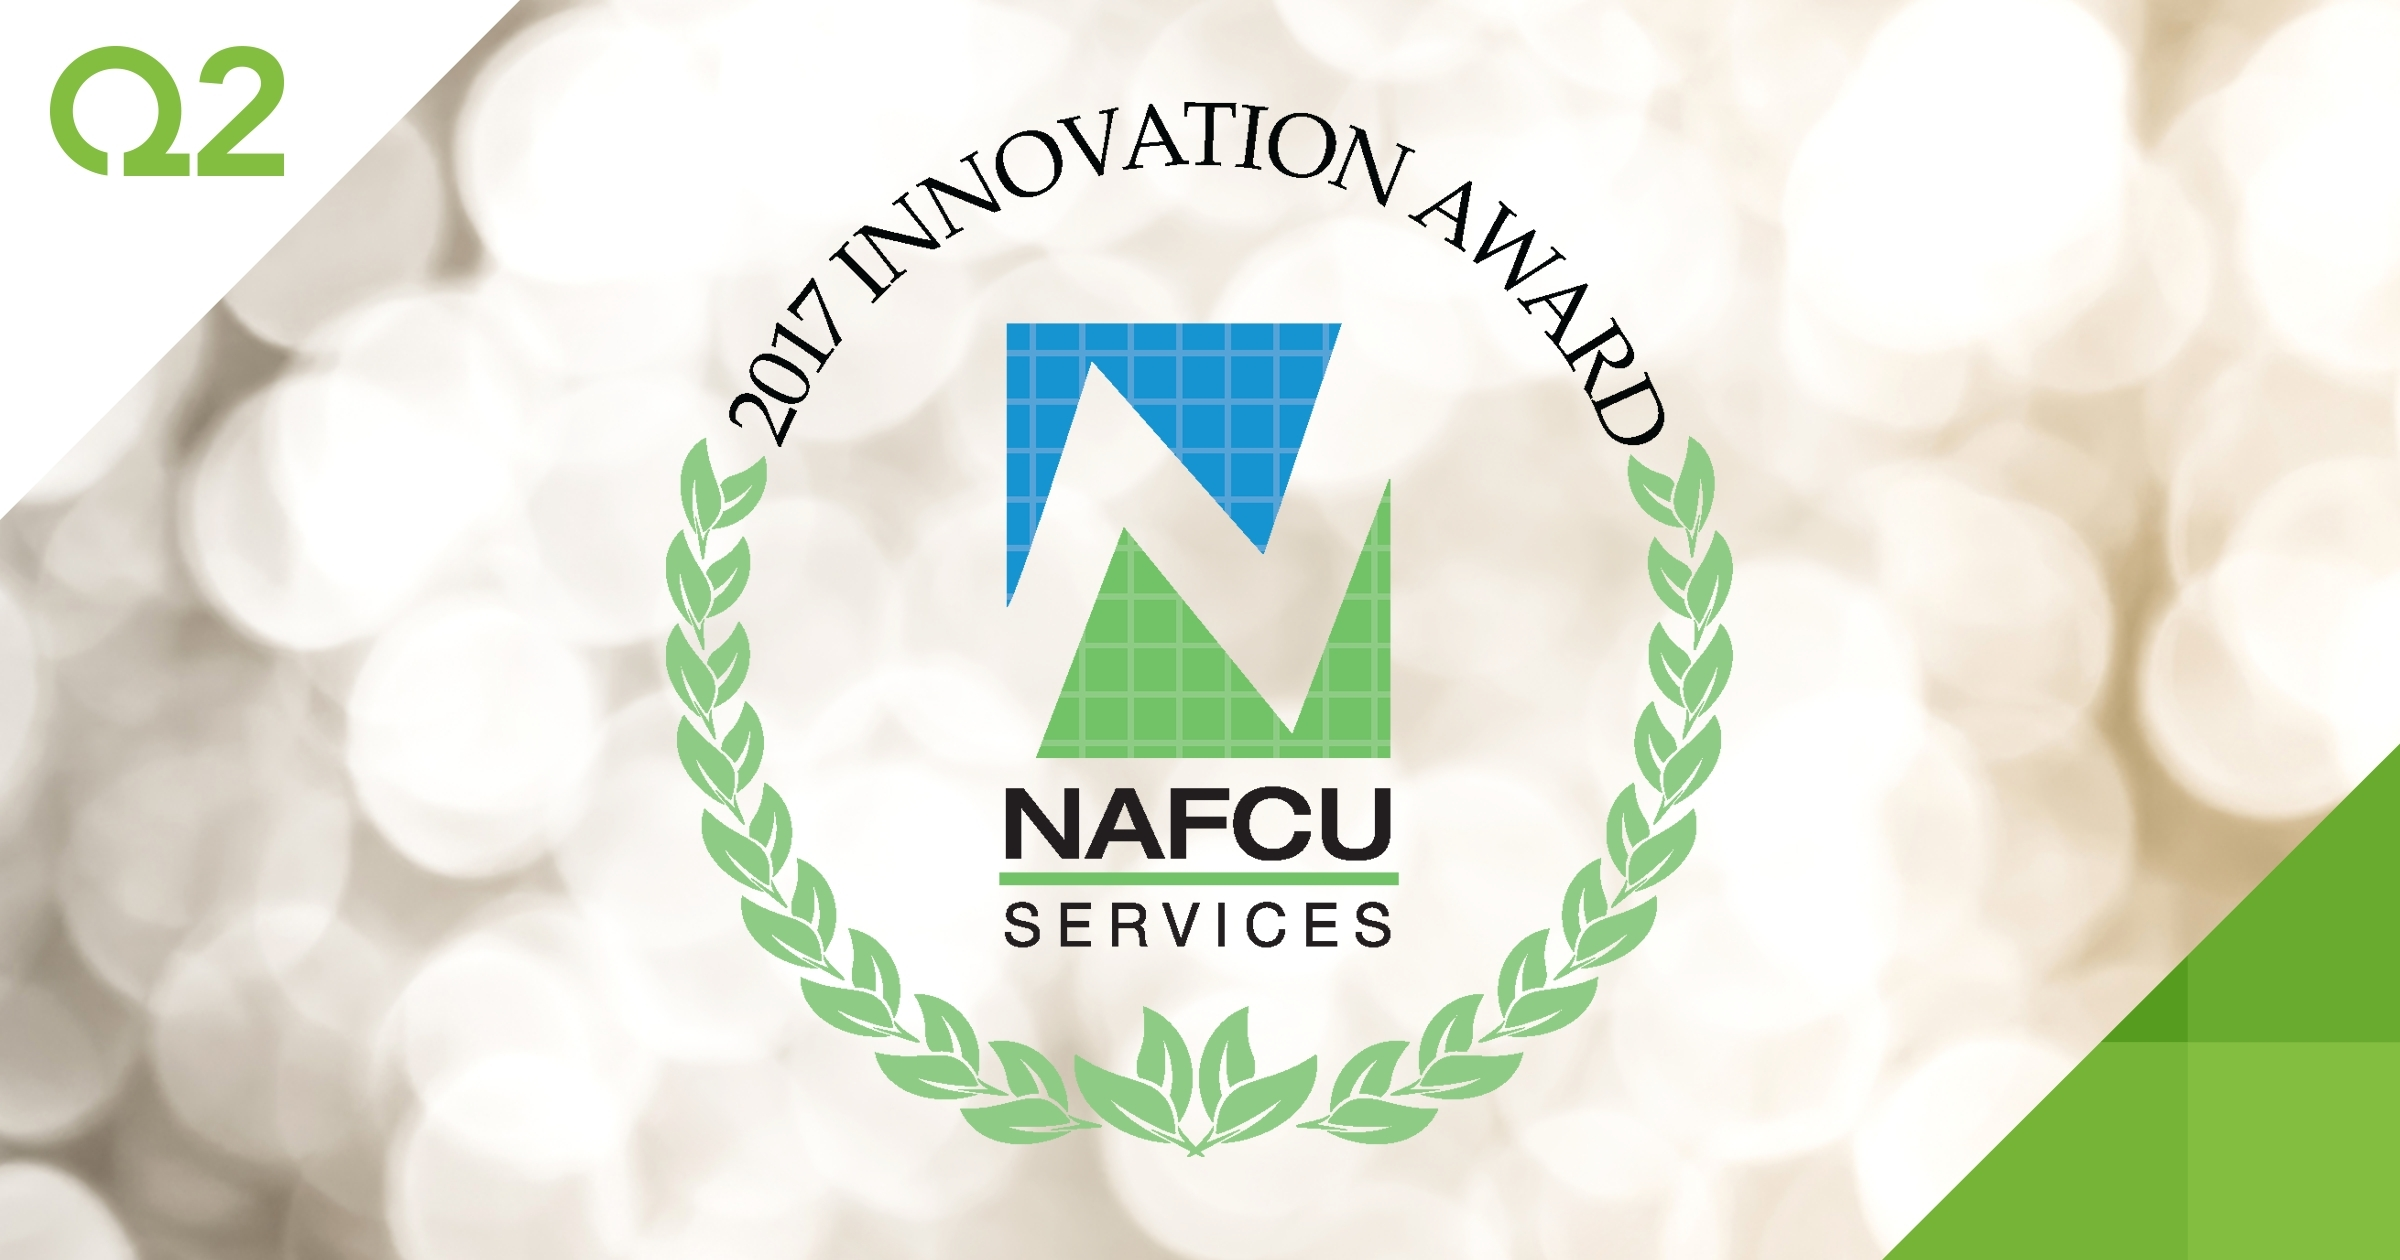 NAFCU Services awarded Q2 with an Innovation Award for Q2 SMART during the NAFCU Annual Conference in Honolulu.(Graphic: Business Wire)